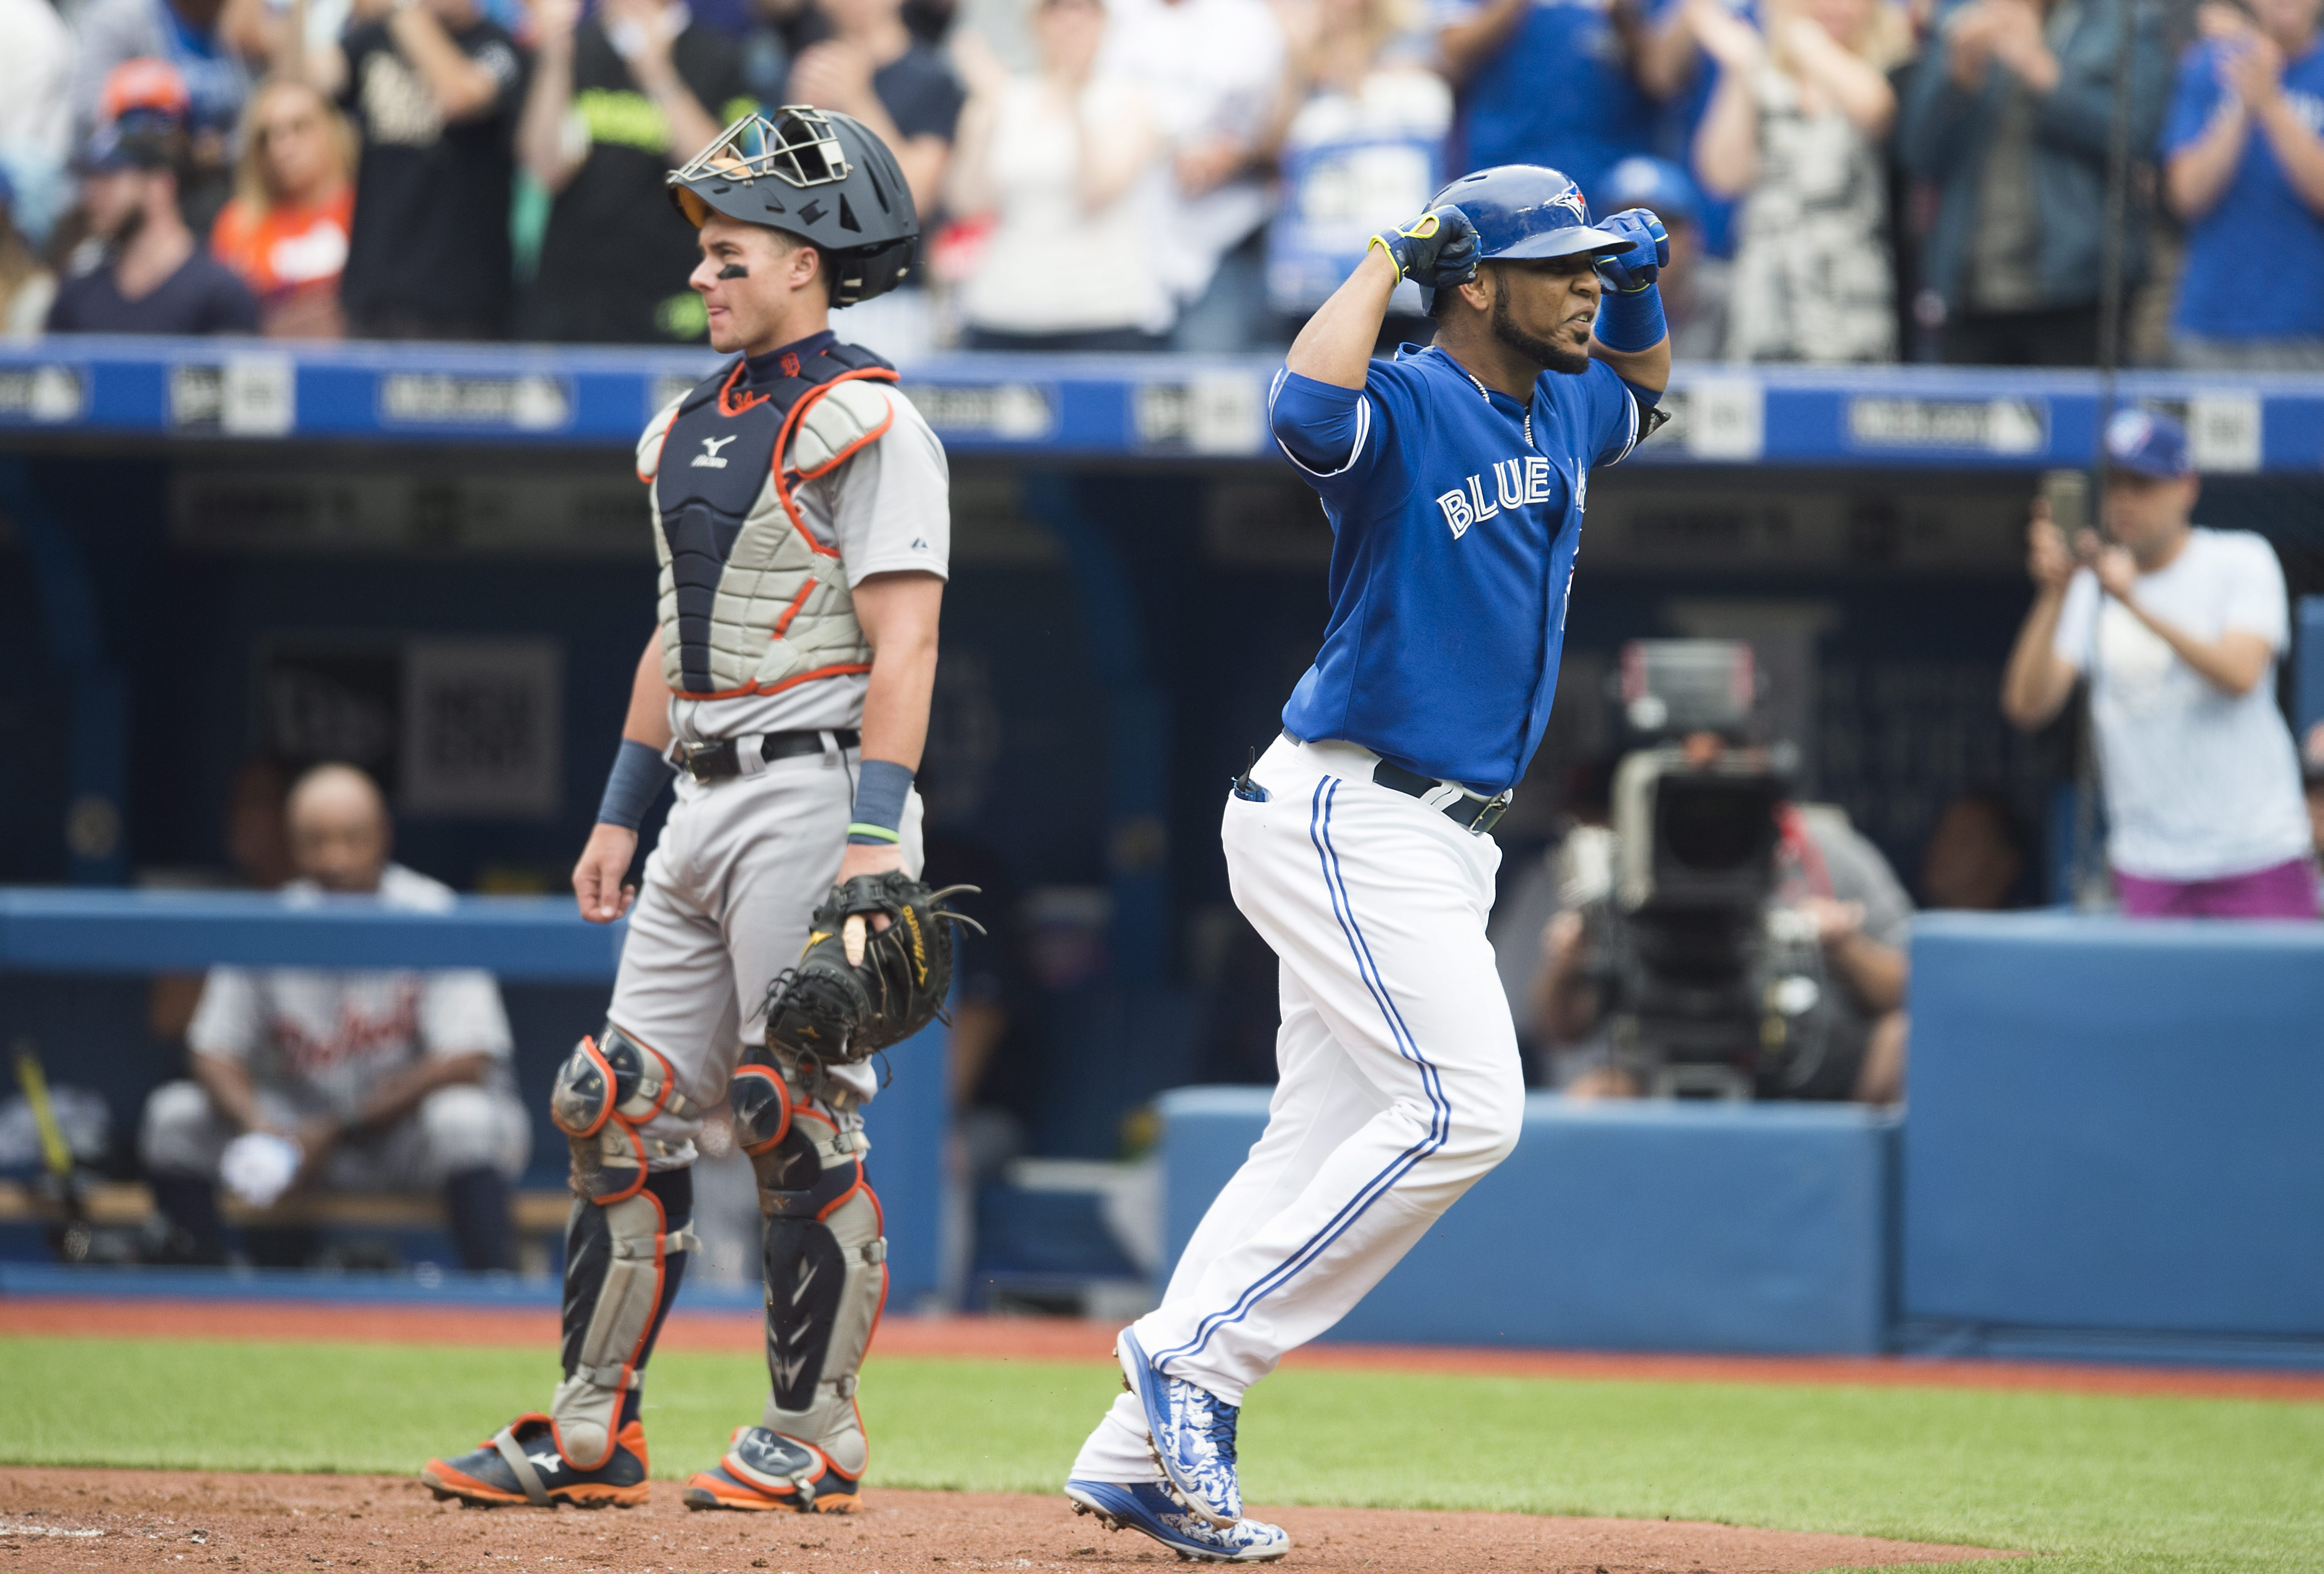 Toronto Blue Jays' Edwin Encarnacion, right, celebrates a three-run home run in front of Detroit Tigers' catcher James McCann during the first inning of a baseball game in Toronto on Saturday, Aug. 29, 2015. (Darren Calabrese/The Canadian Press via AP) MA